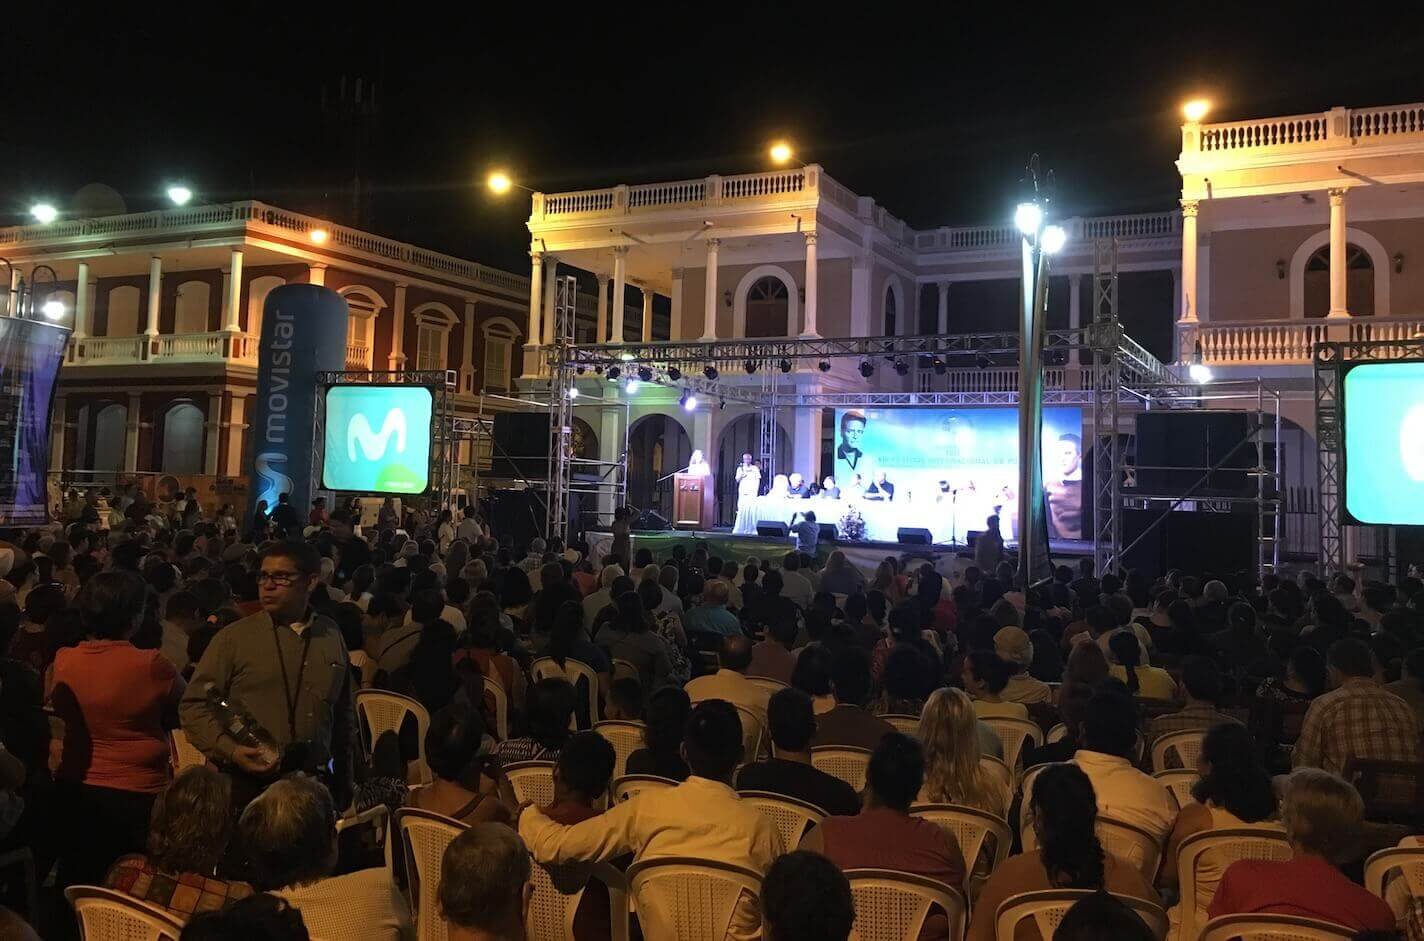 A nighttime shot showing one of the many outdoor venues where poets from across the globe presented their work during the Poetry Festival of Granada in Granada, Nicaragua.